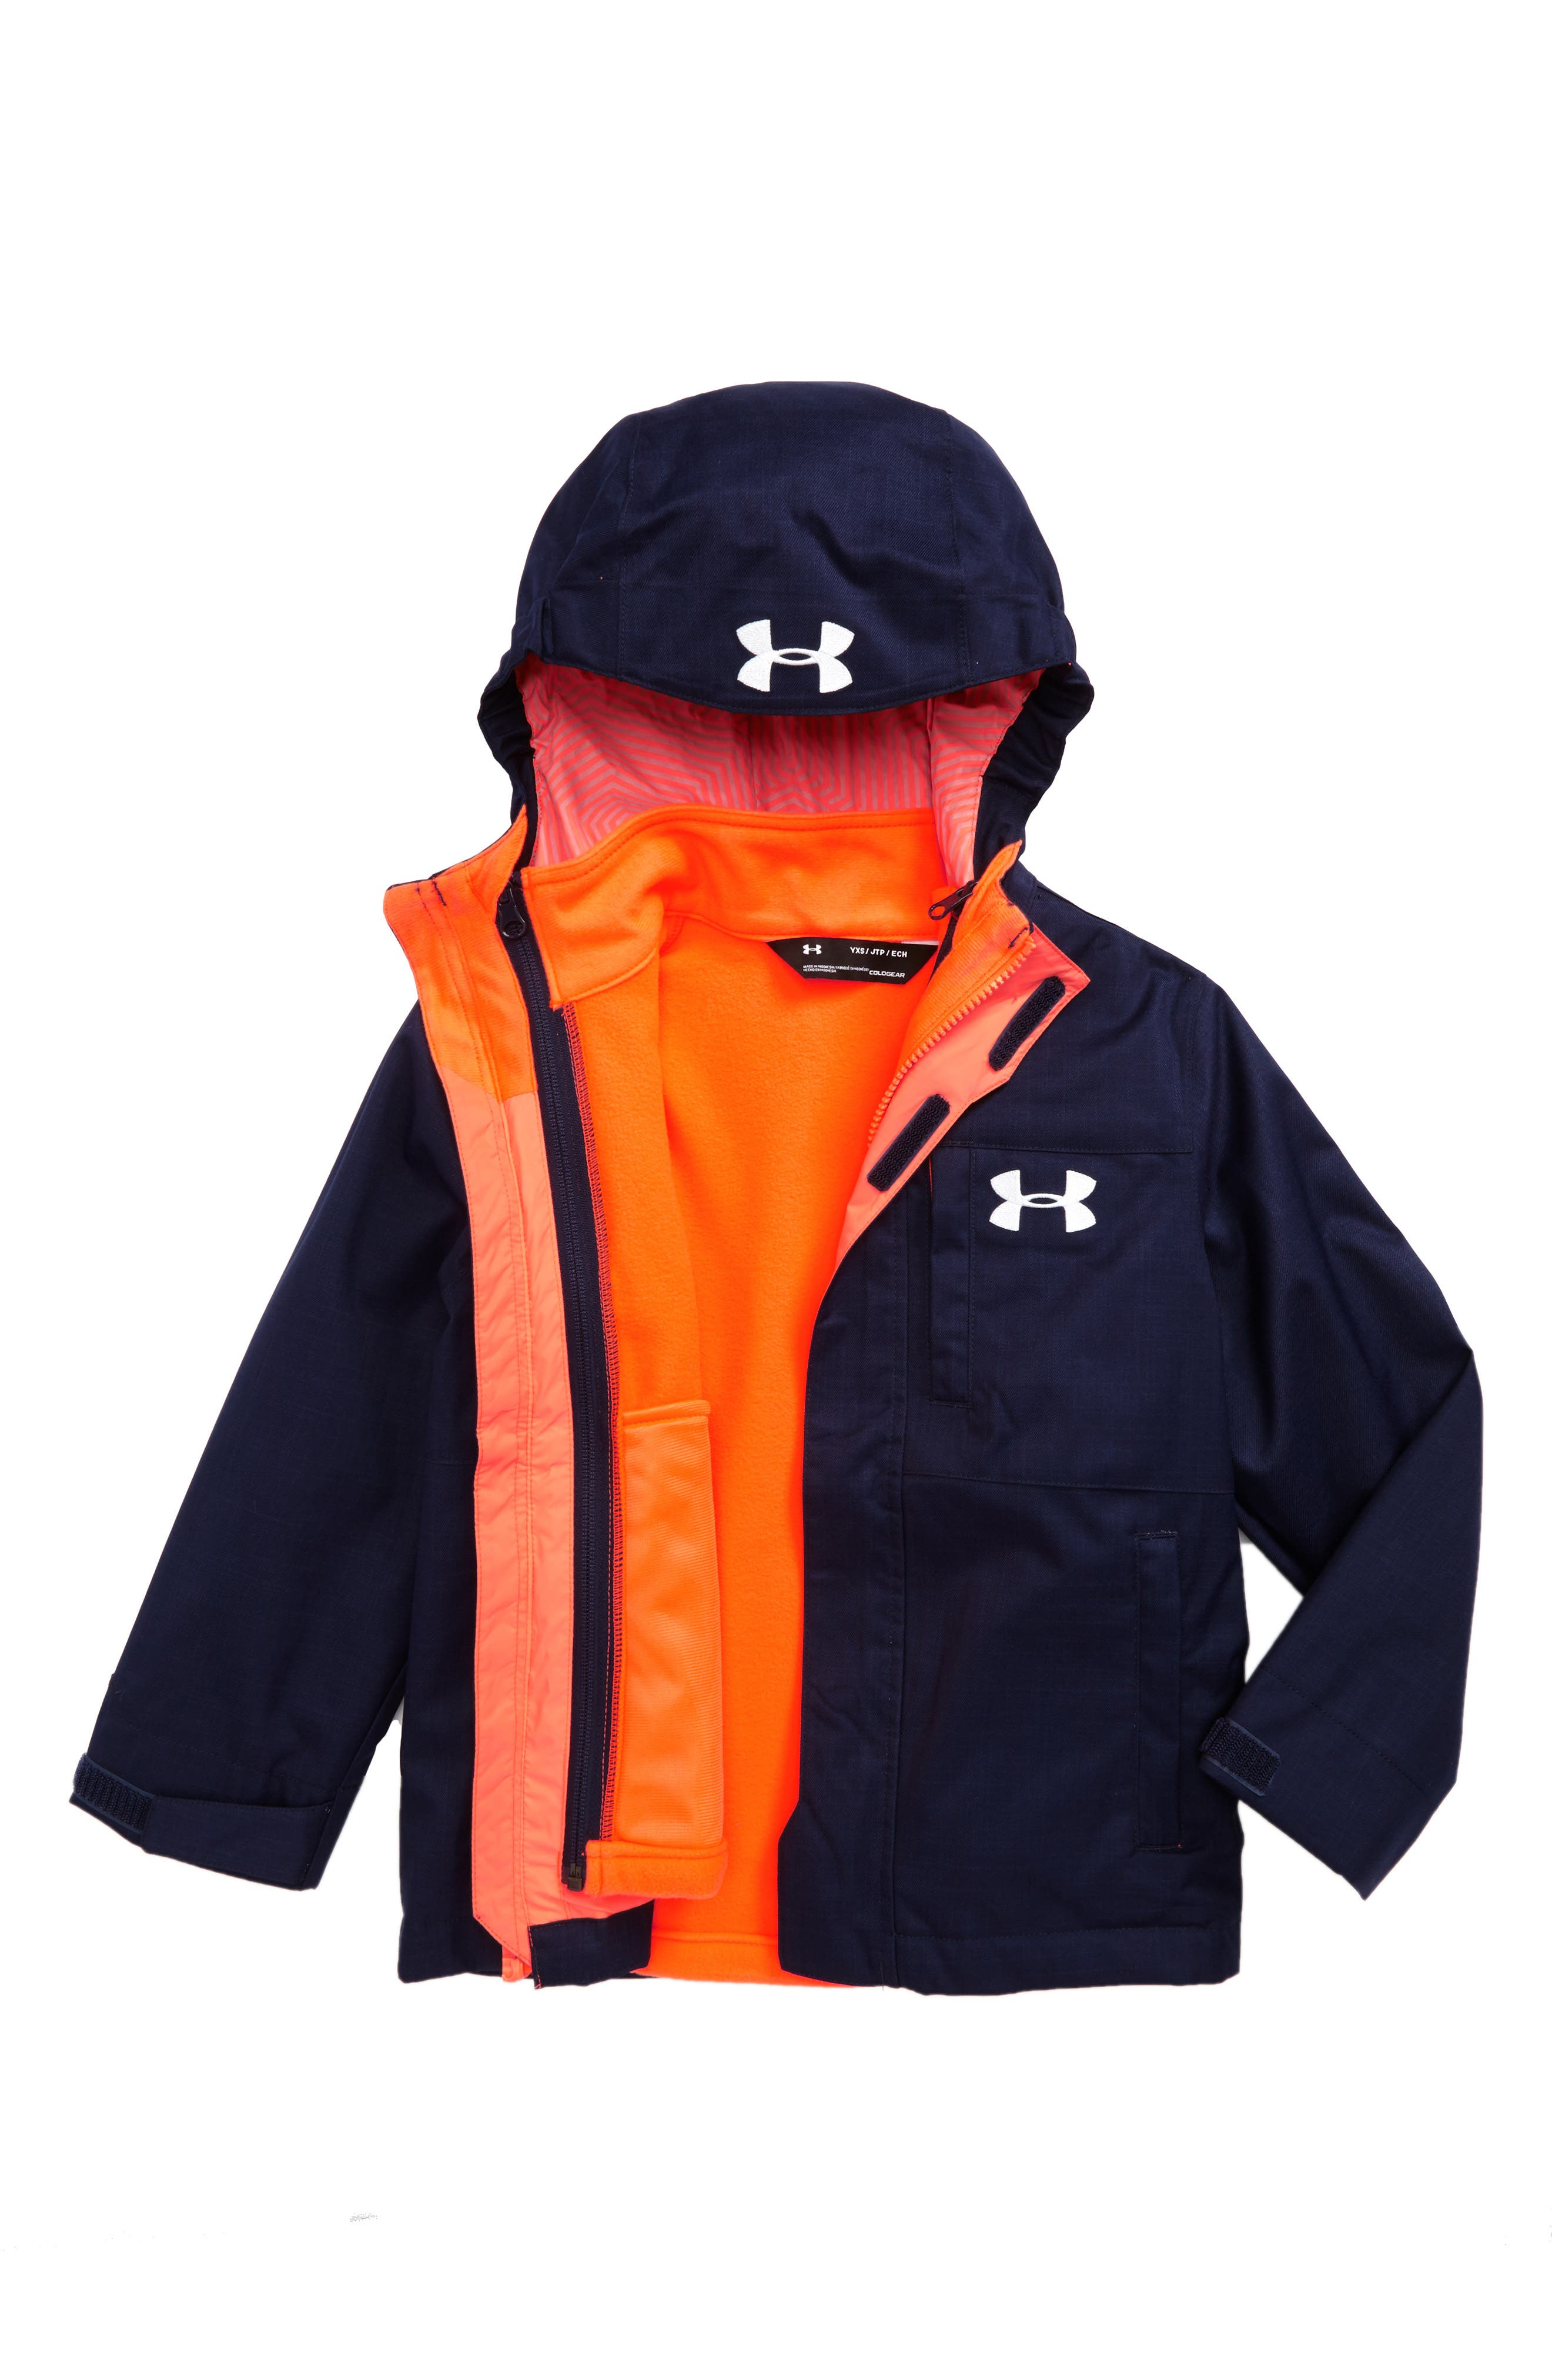 Alternate Image 1 Selected - Under Armour Wildwood ColdGear® 3-in-1 Jacket (Little Boys & Big Boys)